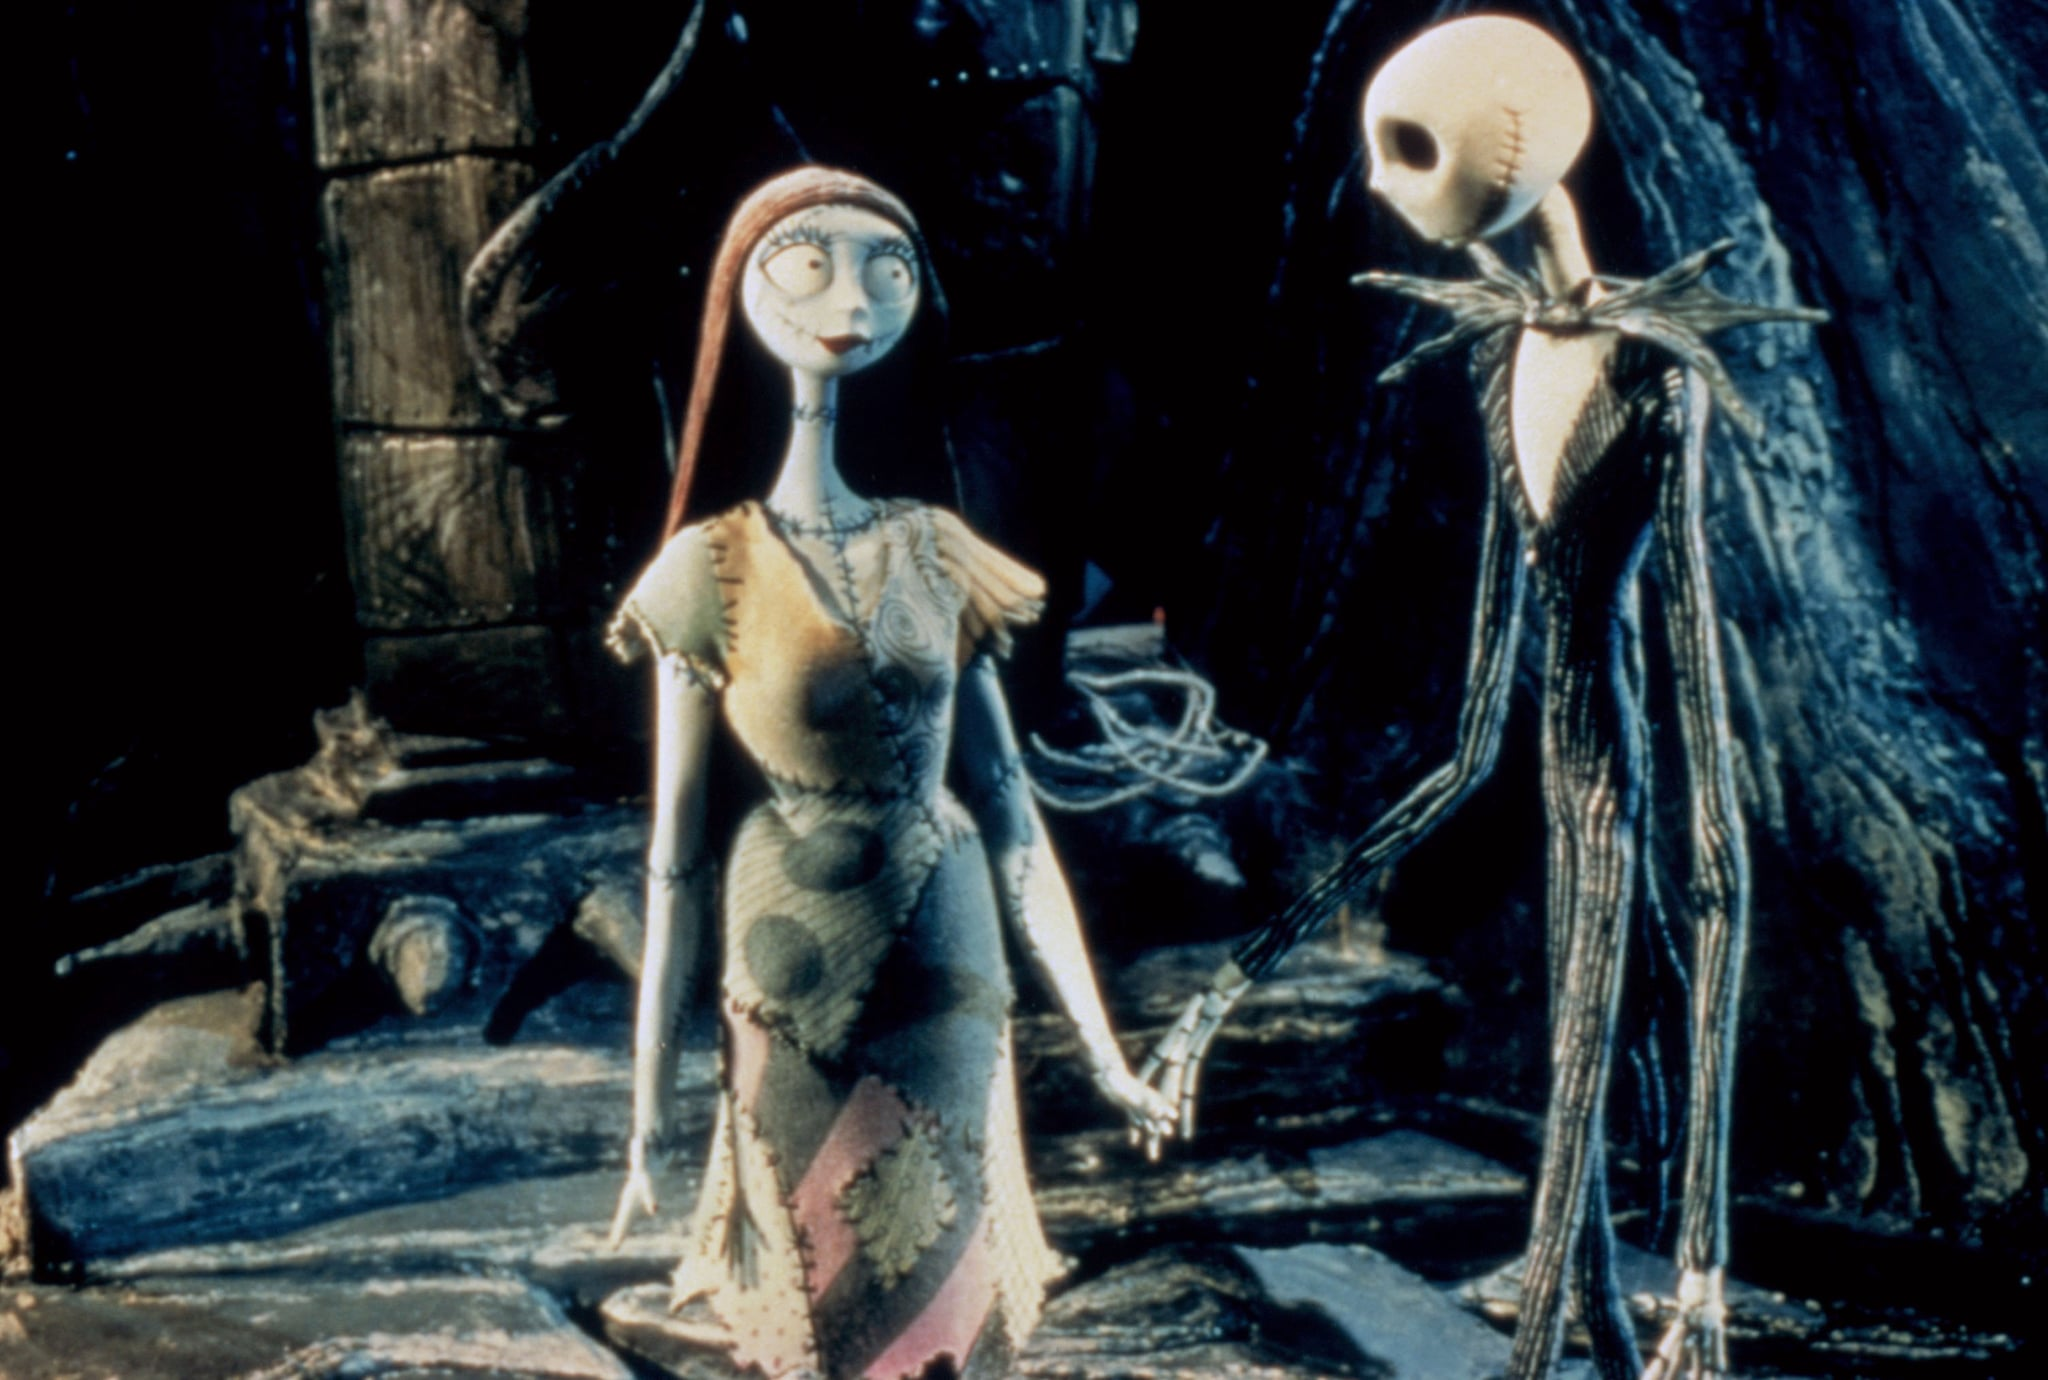 THE NIGHTMARE BEFORE CHRISTMAS, Sally (voice: Catherine O'Hara), Jack Skellington (voice: Chris Sarandon, Danny Elfman), 1993. Buena Vista Pictures/courtesy Everett Collection